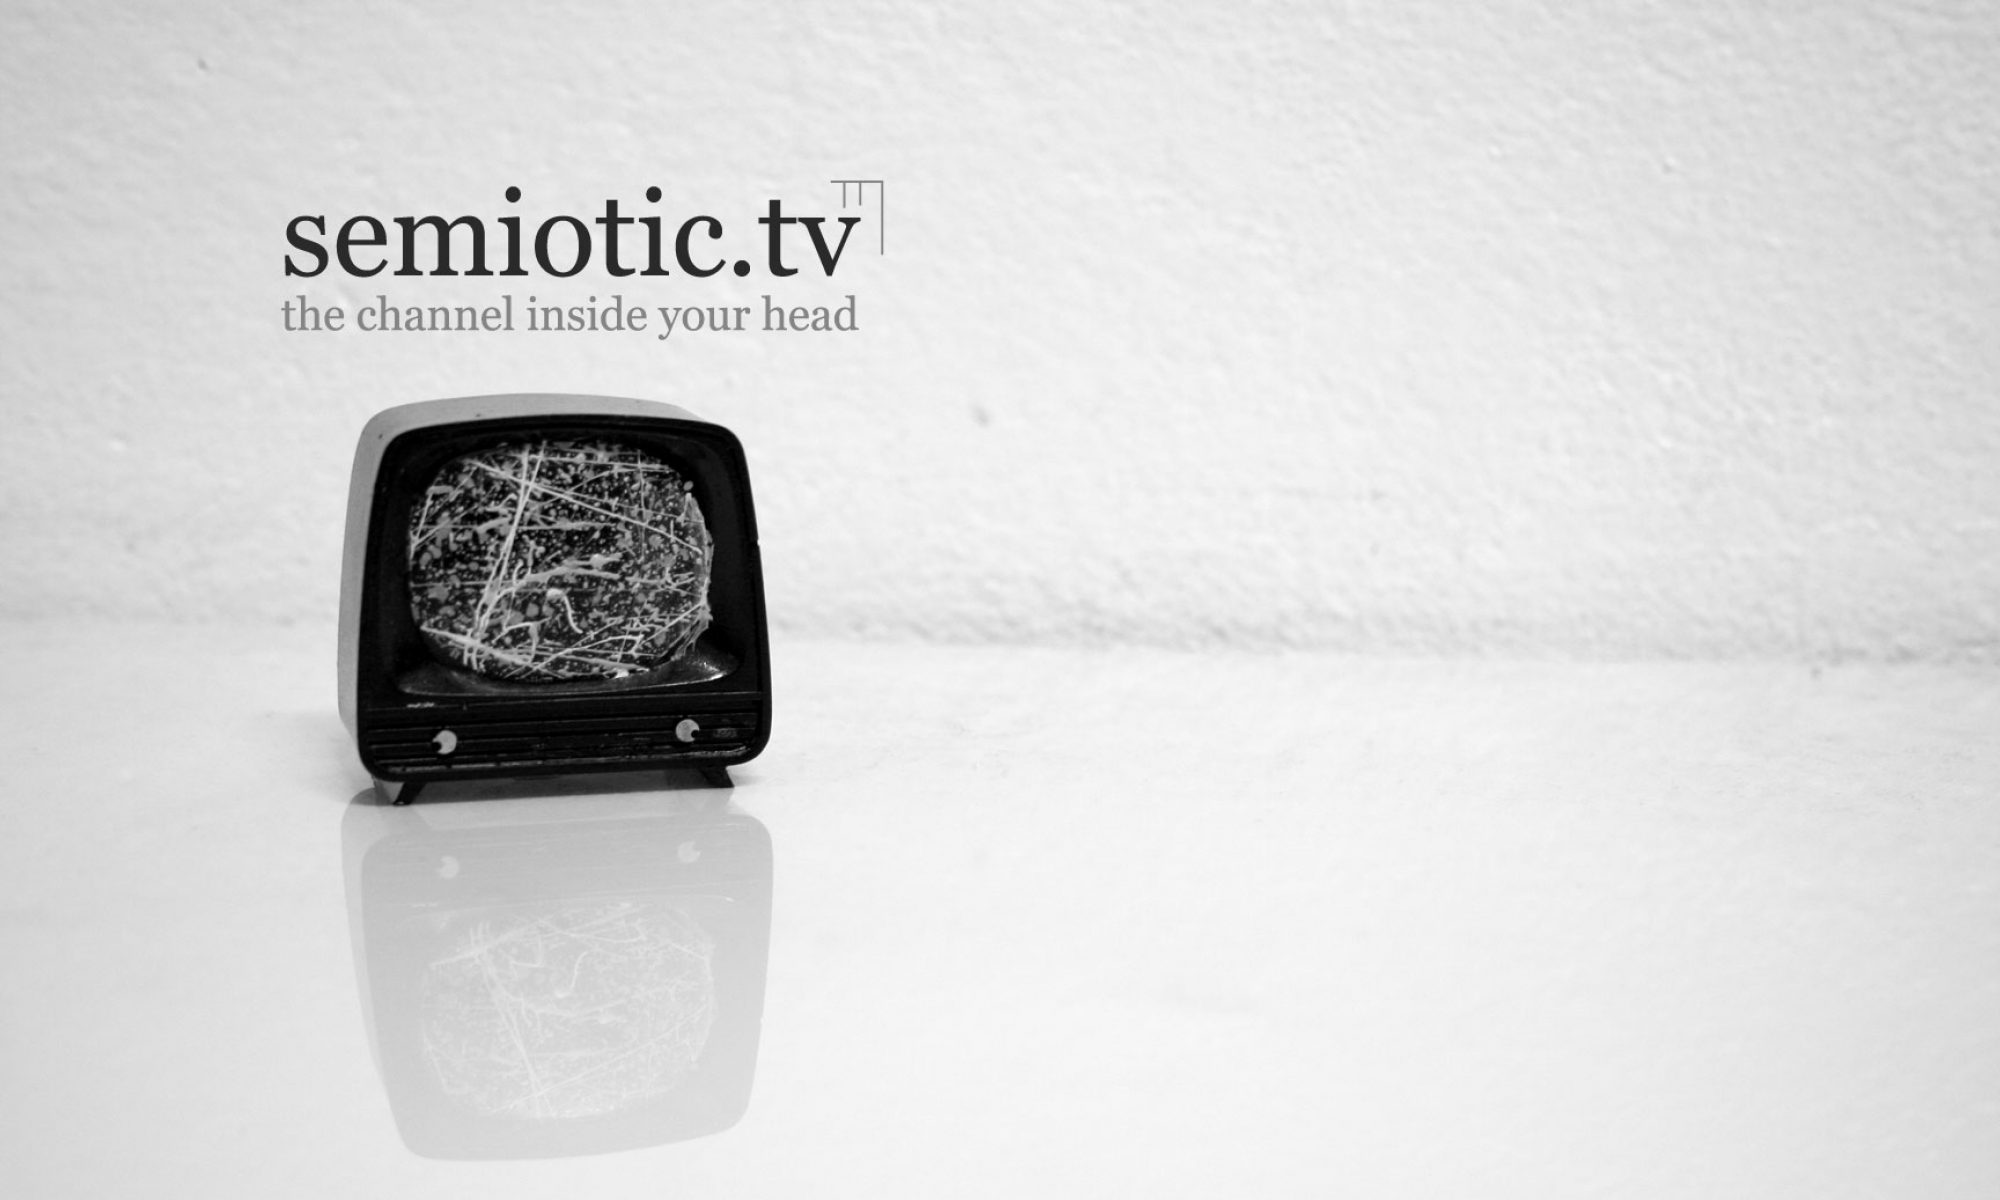 semiotic.tv